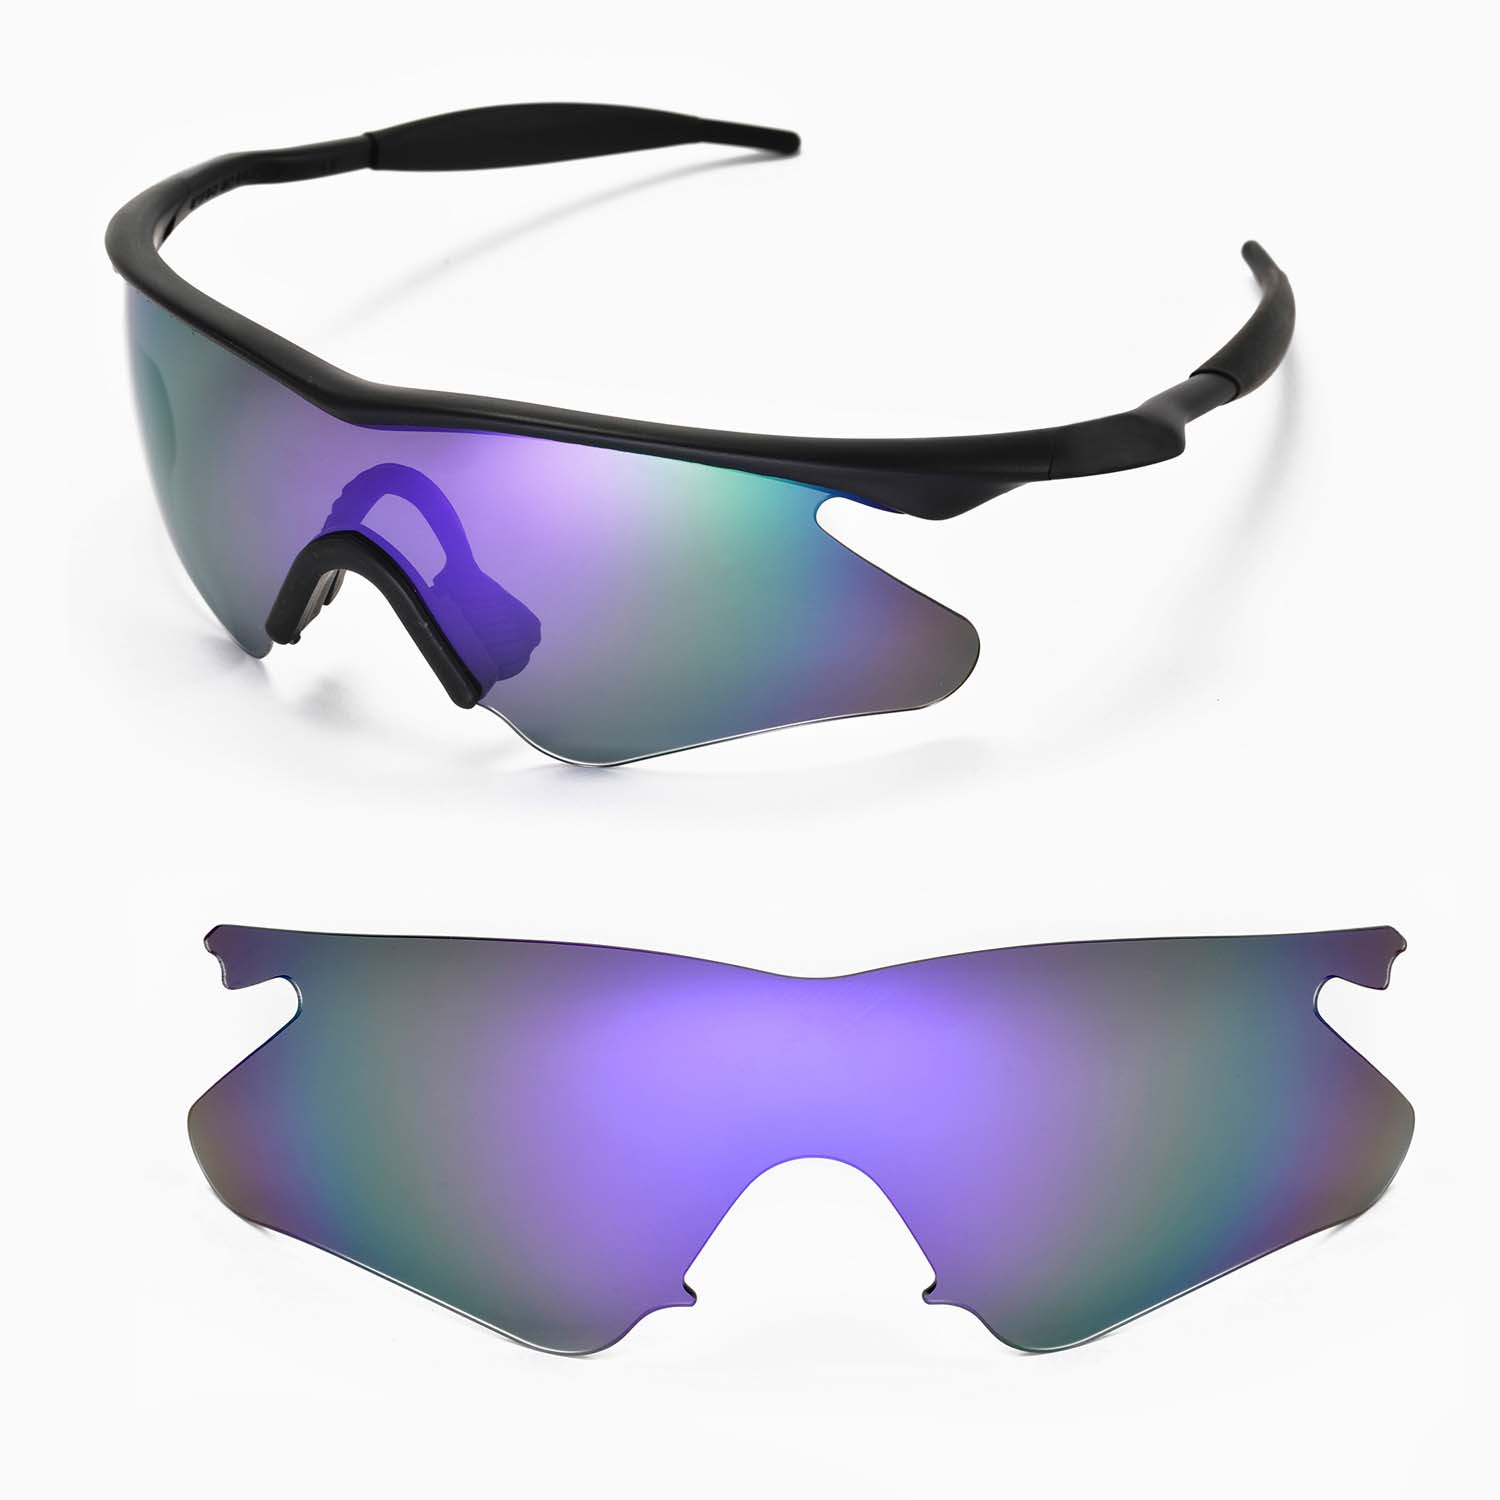 New WL Polarized Purple Sunglasses Lenses For Oakley M Frame Heater ...